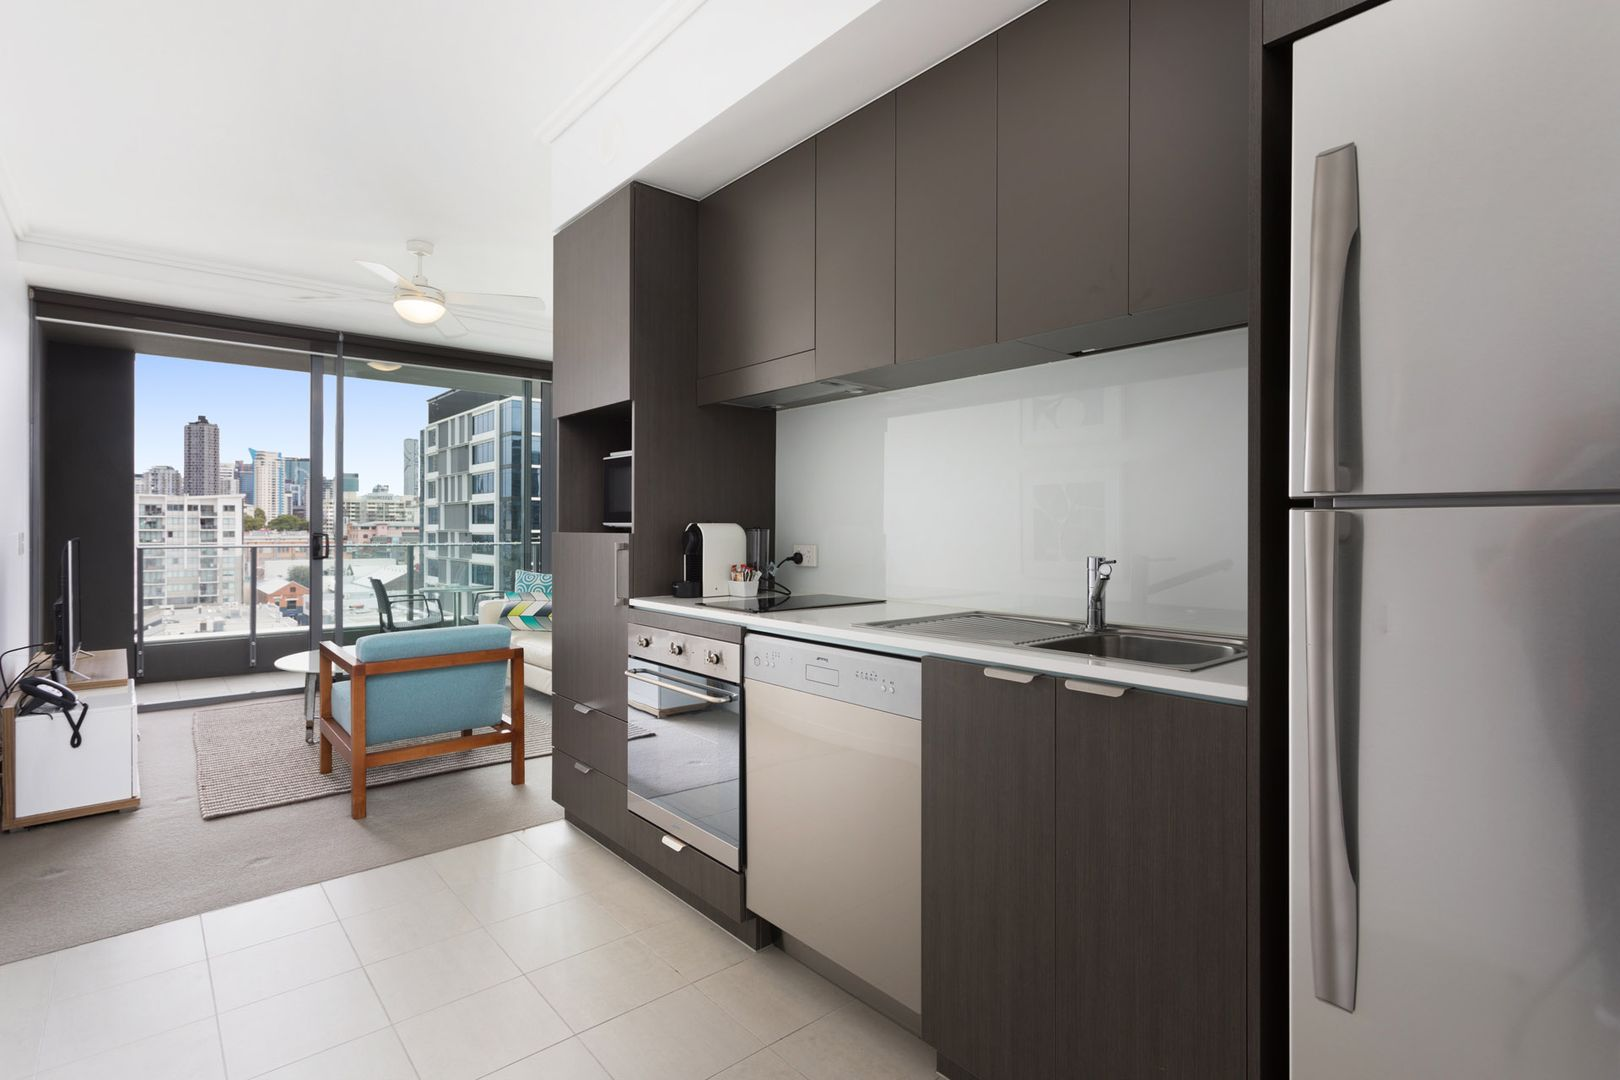 1011/25 Connor Street, Fortitude Valley QLD 4006, Image 2